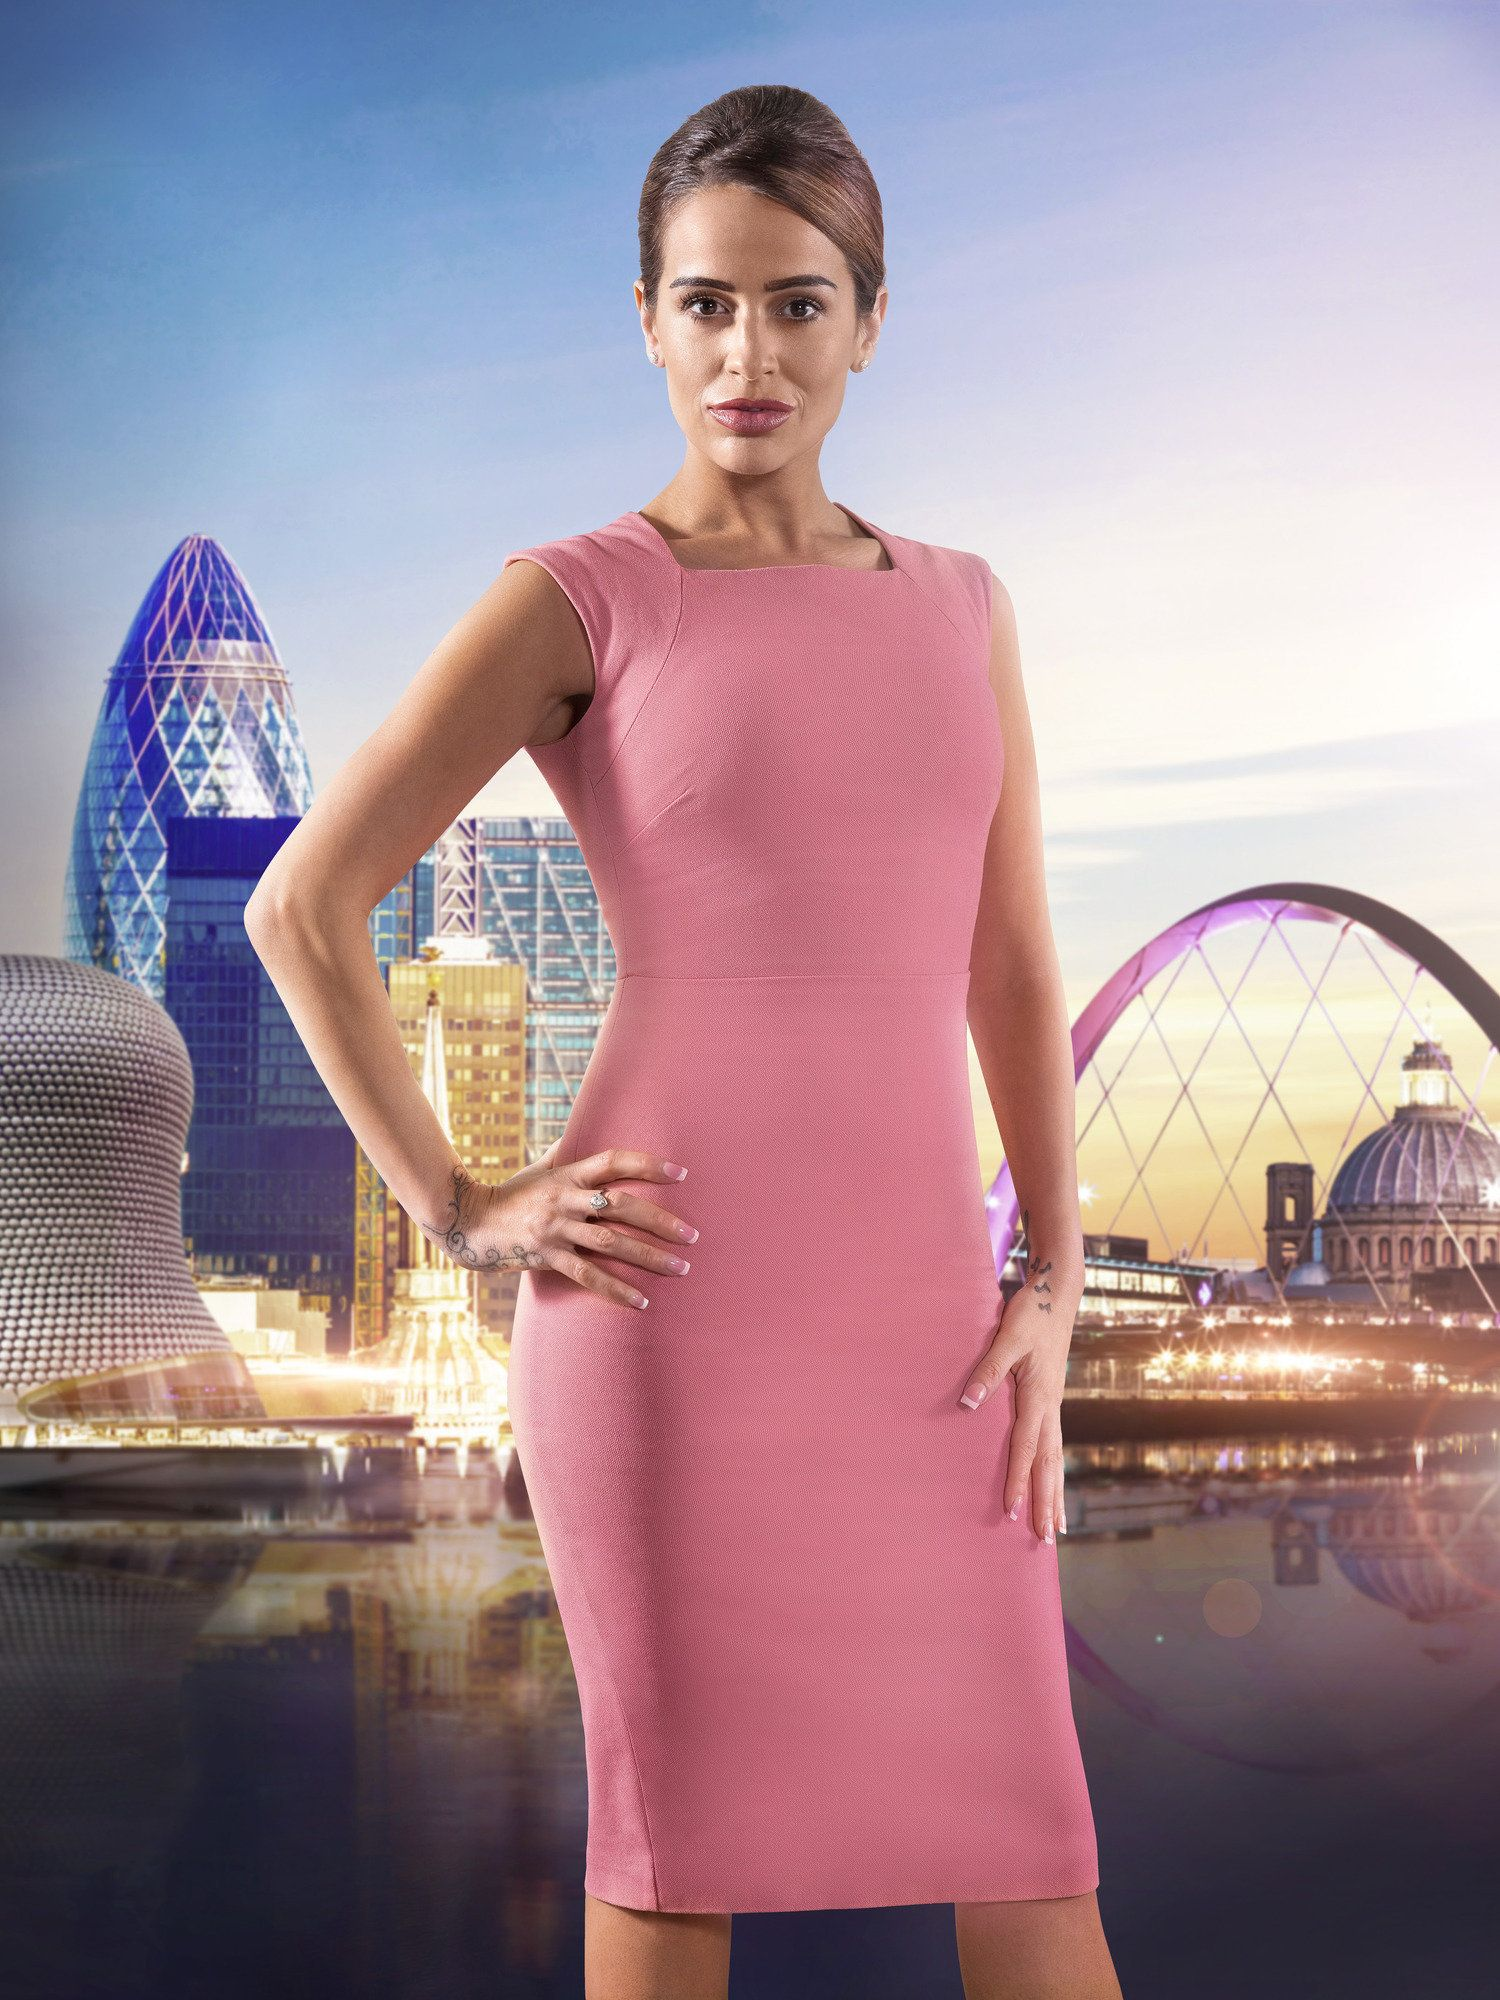 'The Apprentice' 2018: Contestant Sarah Byrne Previously Starred In 'Hollyoaks' And